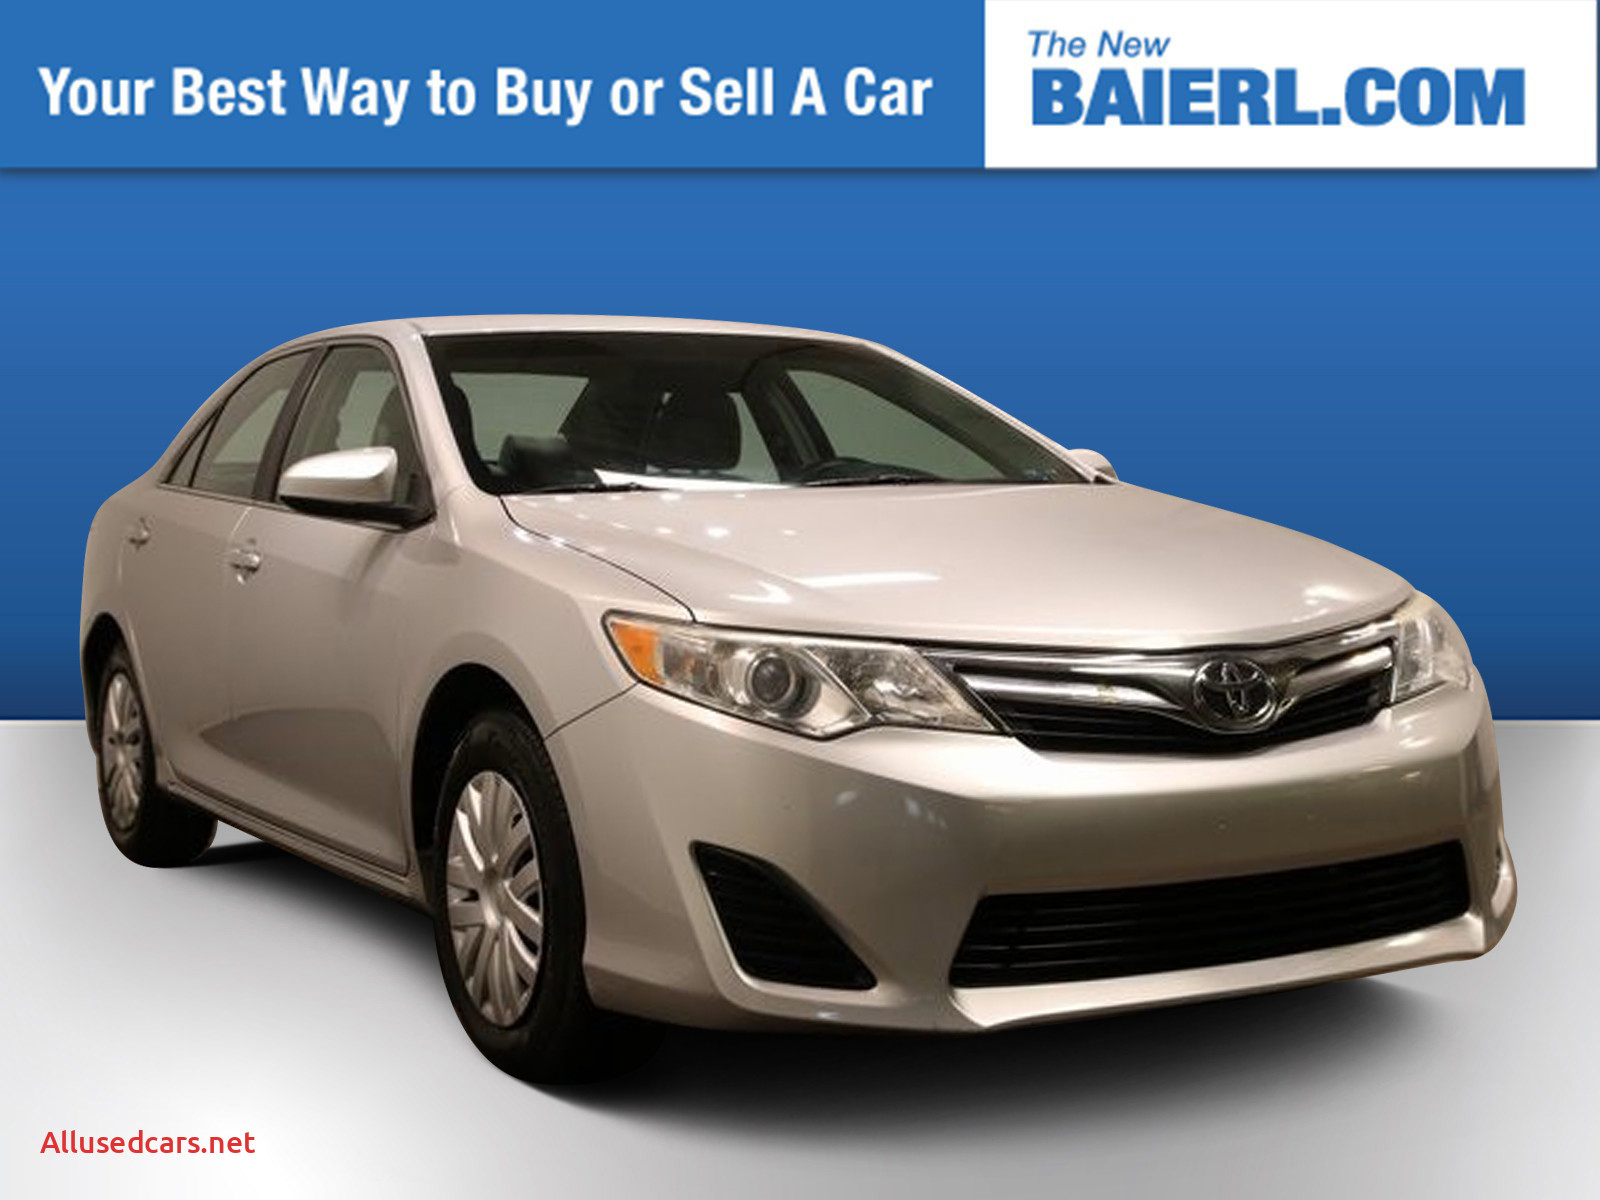 2010 toyota Camry Unique Pre Owned toyota Camry Express